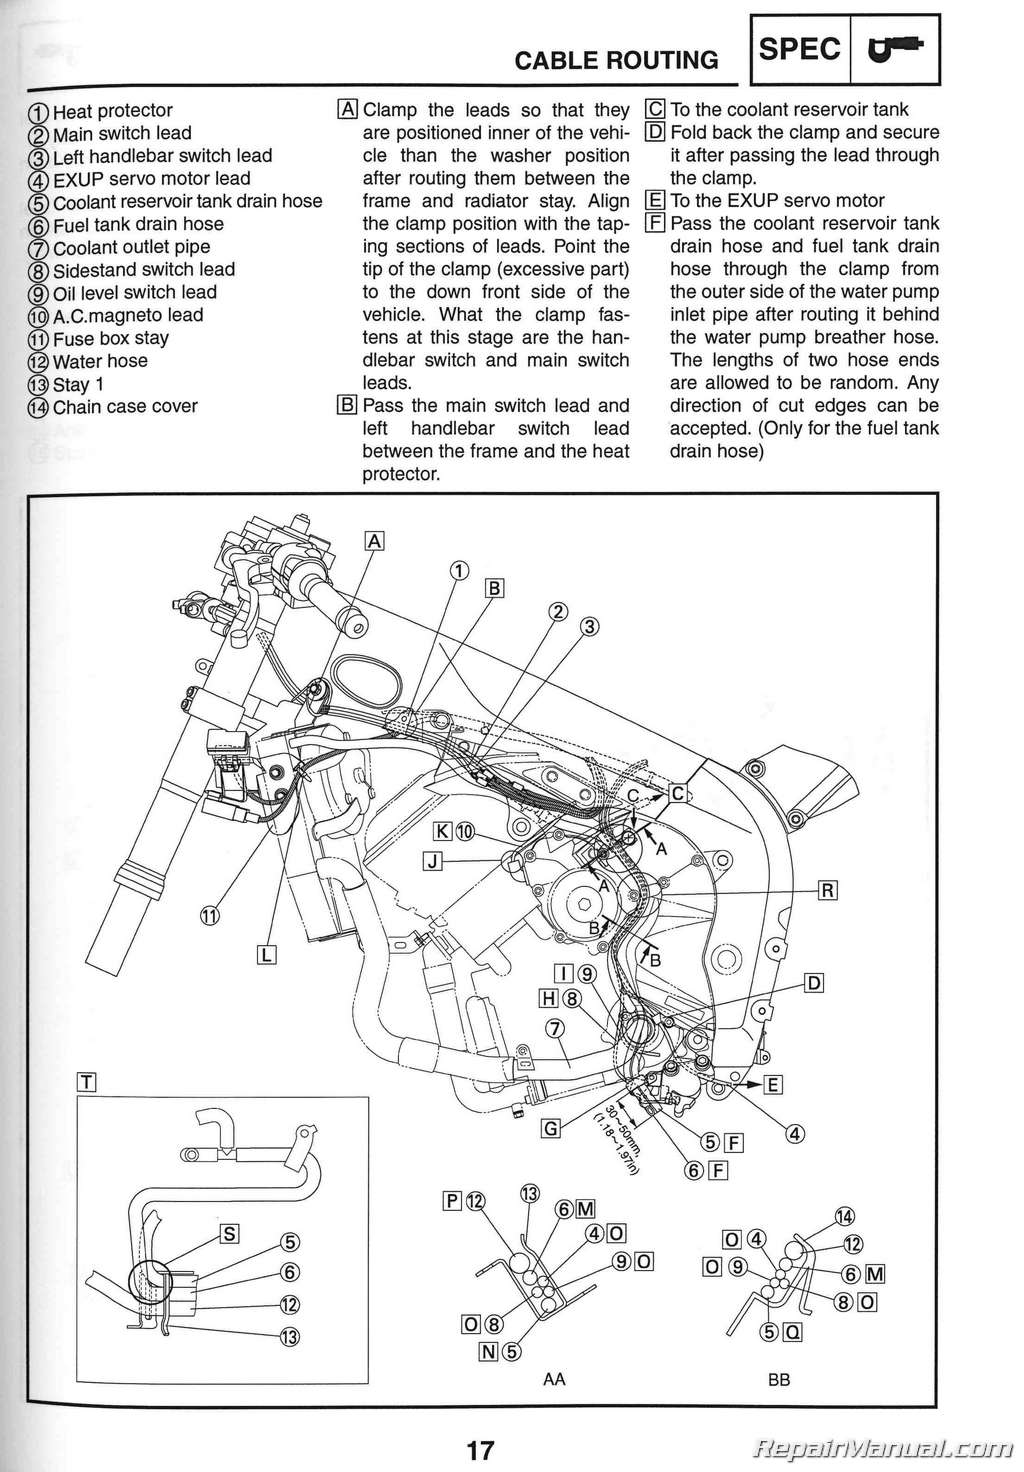 hight resolution of 2006 yamaha yzf r1 motorcycle service manual 2009 service manual yamaha yzfr1 and wiring diagrams